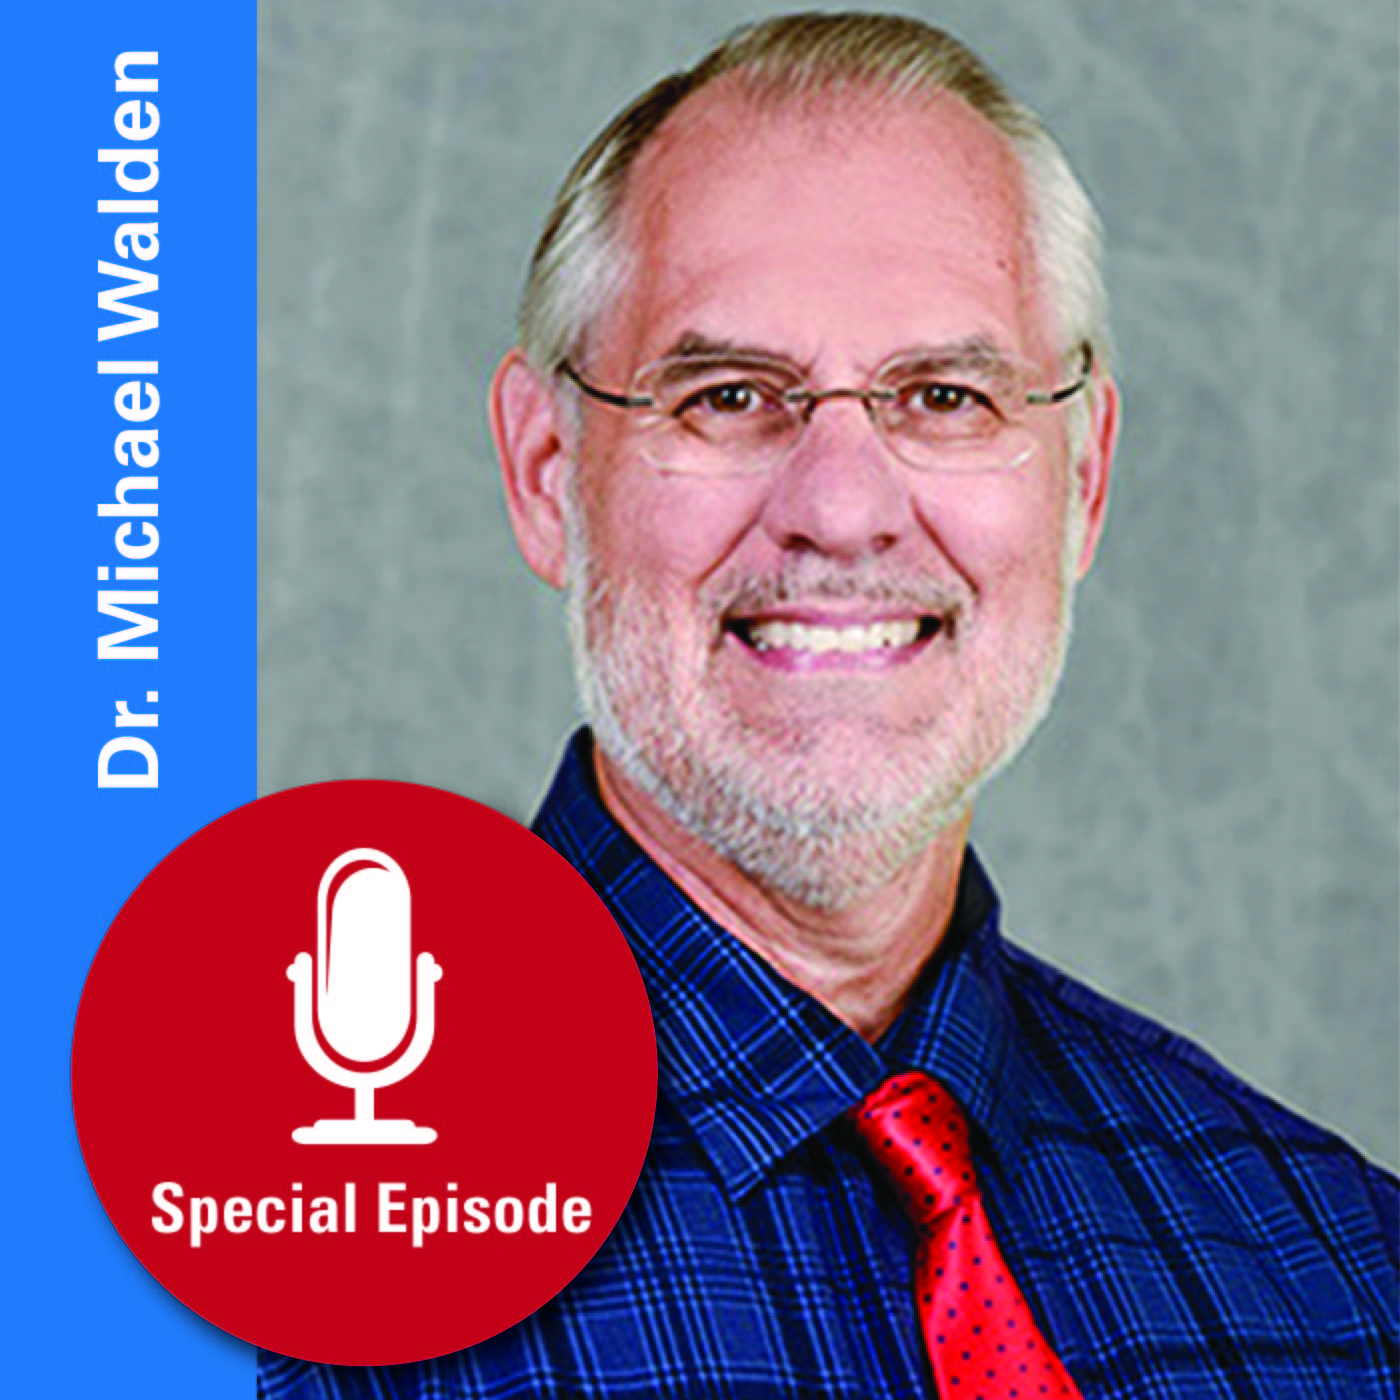 E-Special-01-Dr. Michael Walden Podcast Photo